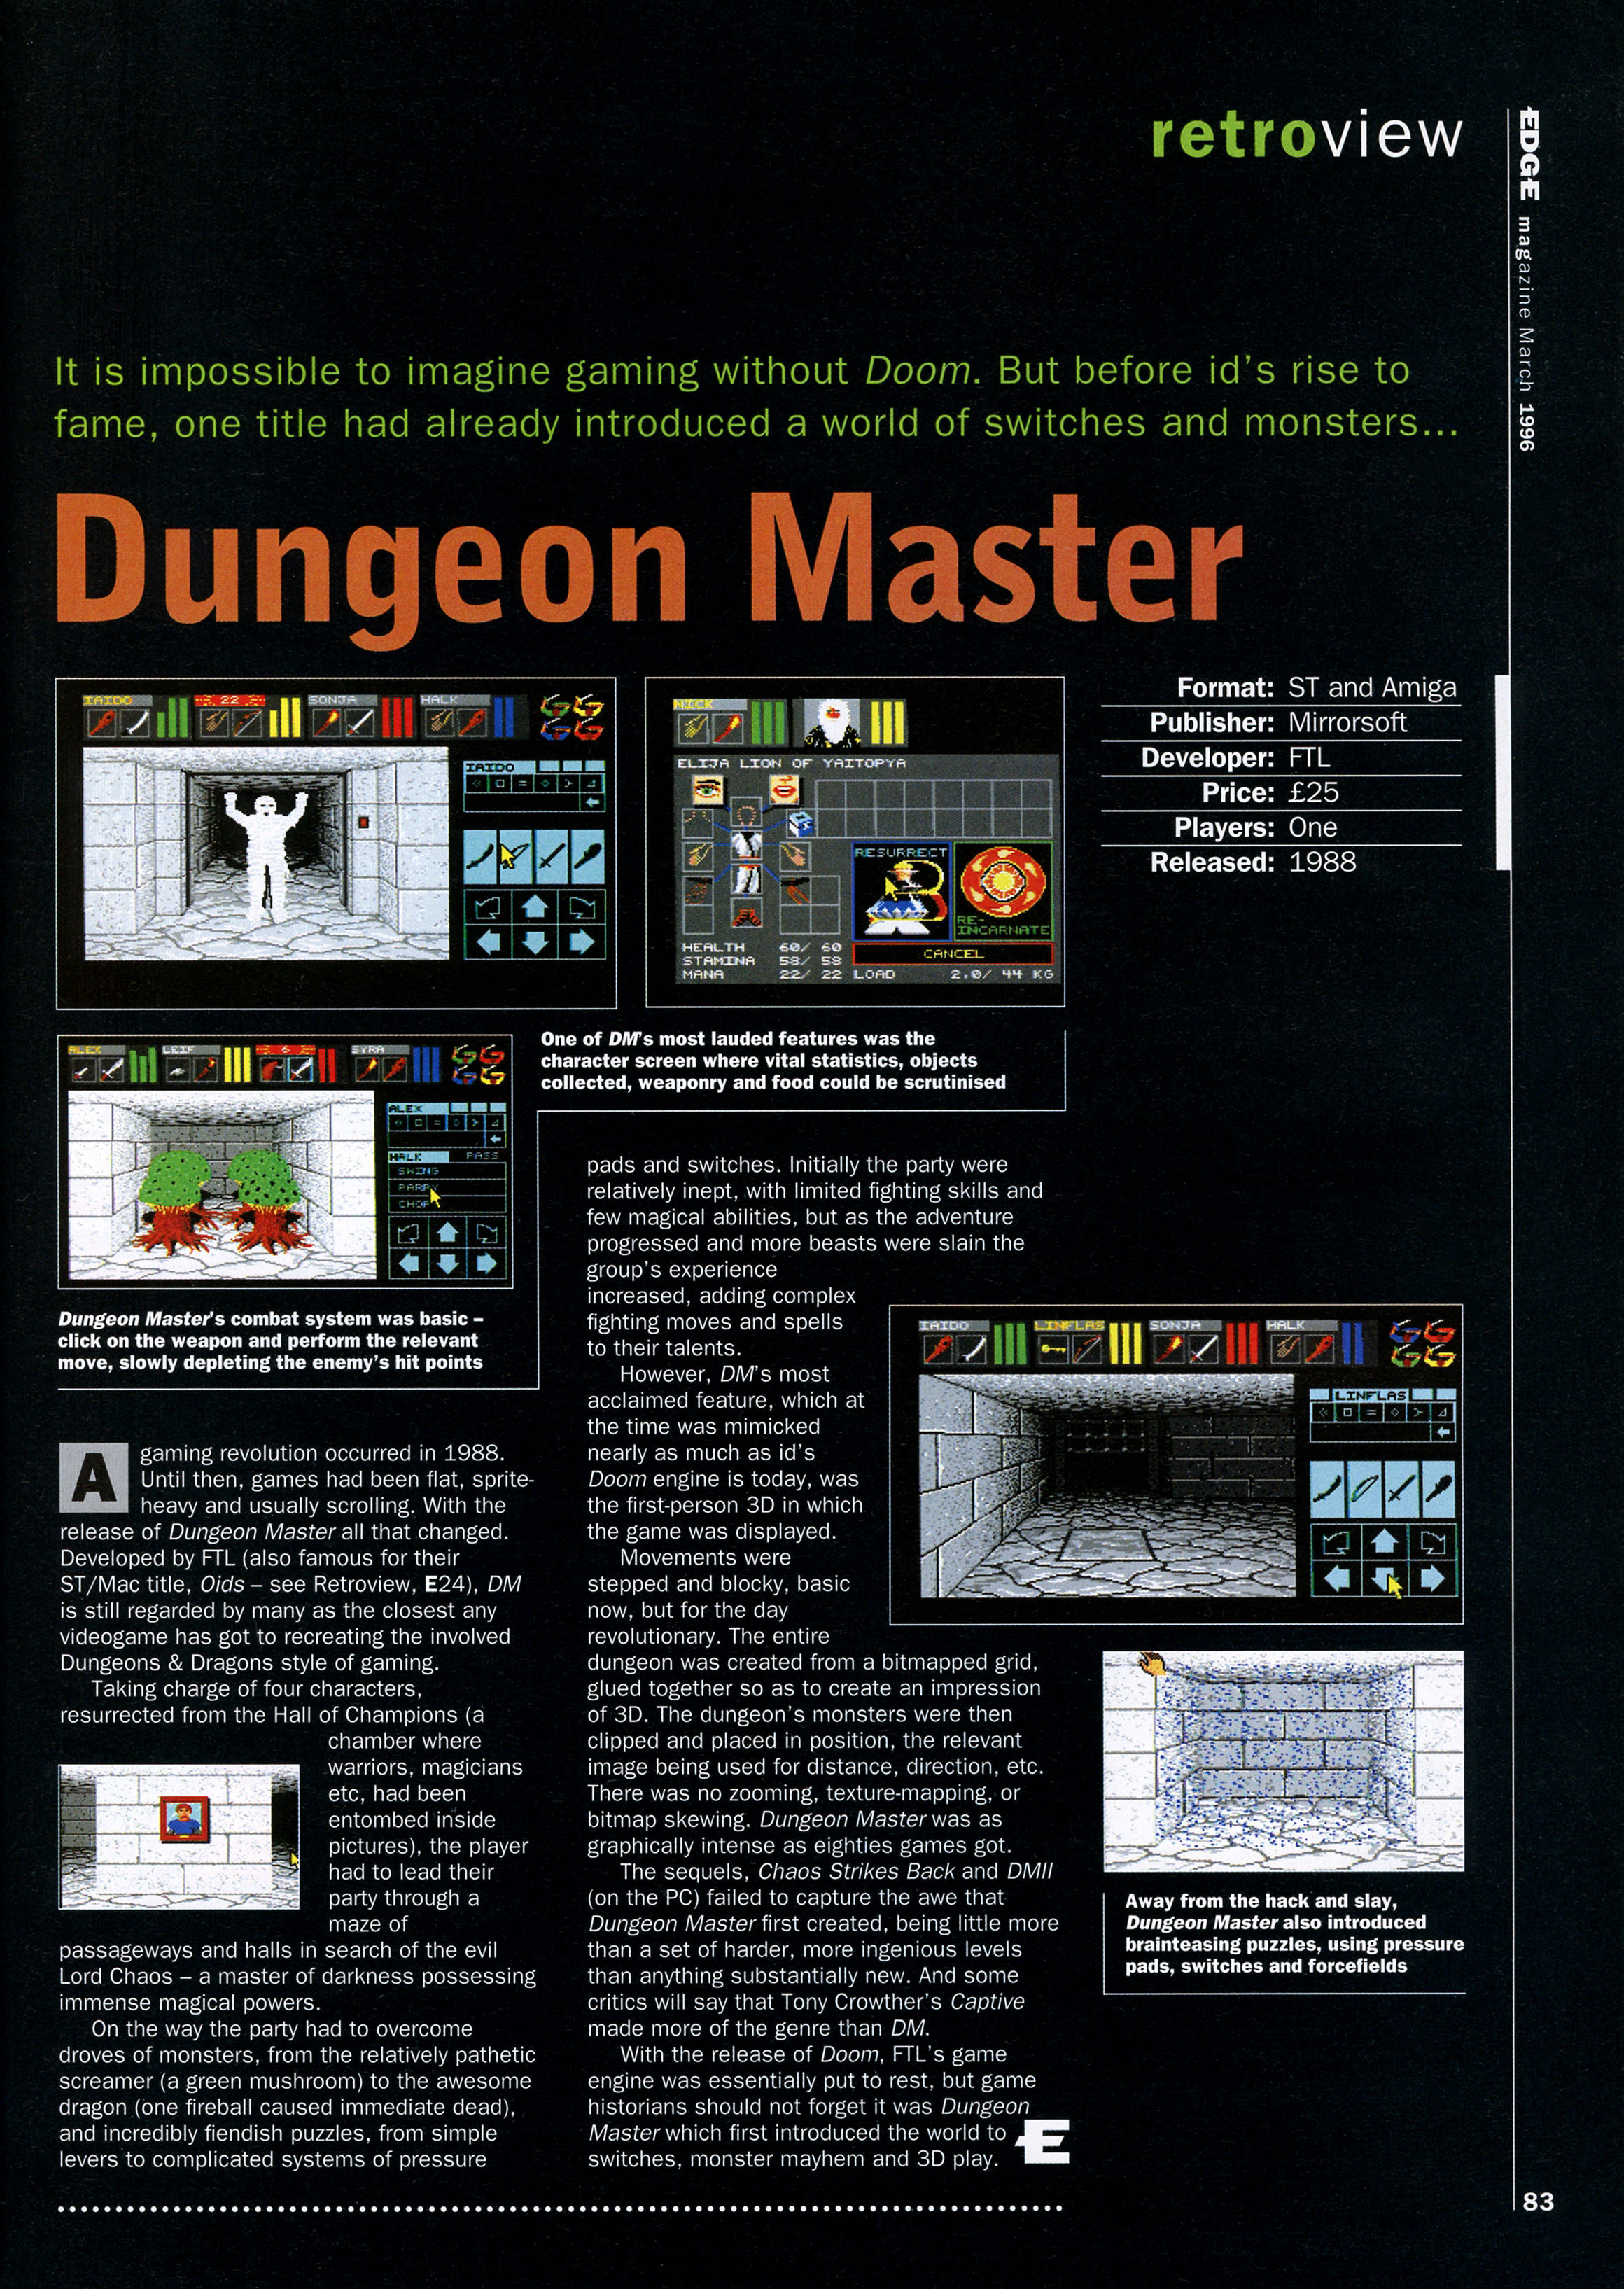 Dungeon Master for Atari ST-Amiga Review published in British magazine 'Edge', Issue #30 March 1996, Page 83